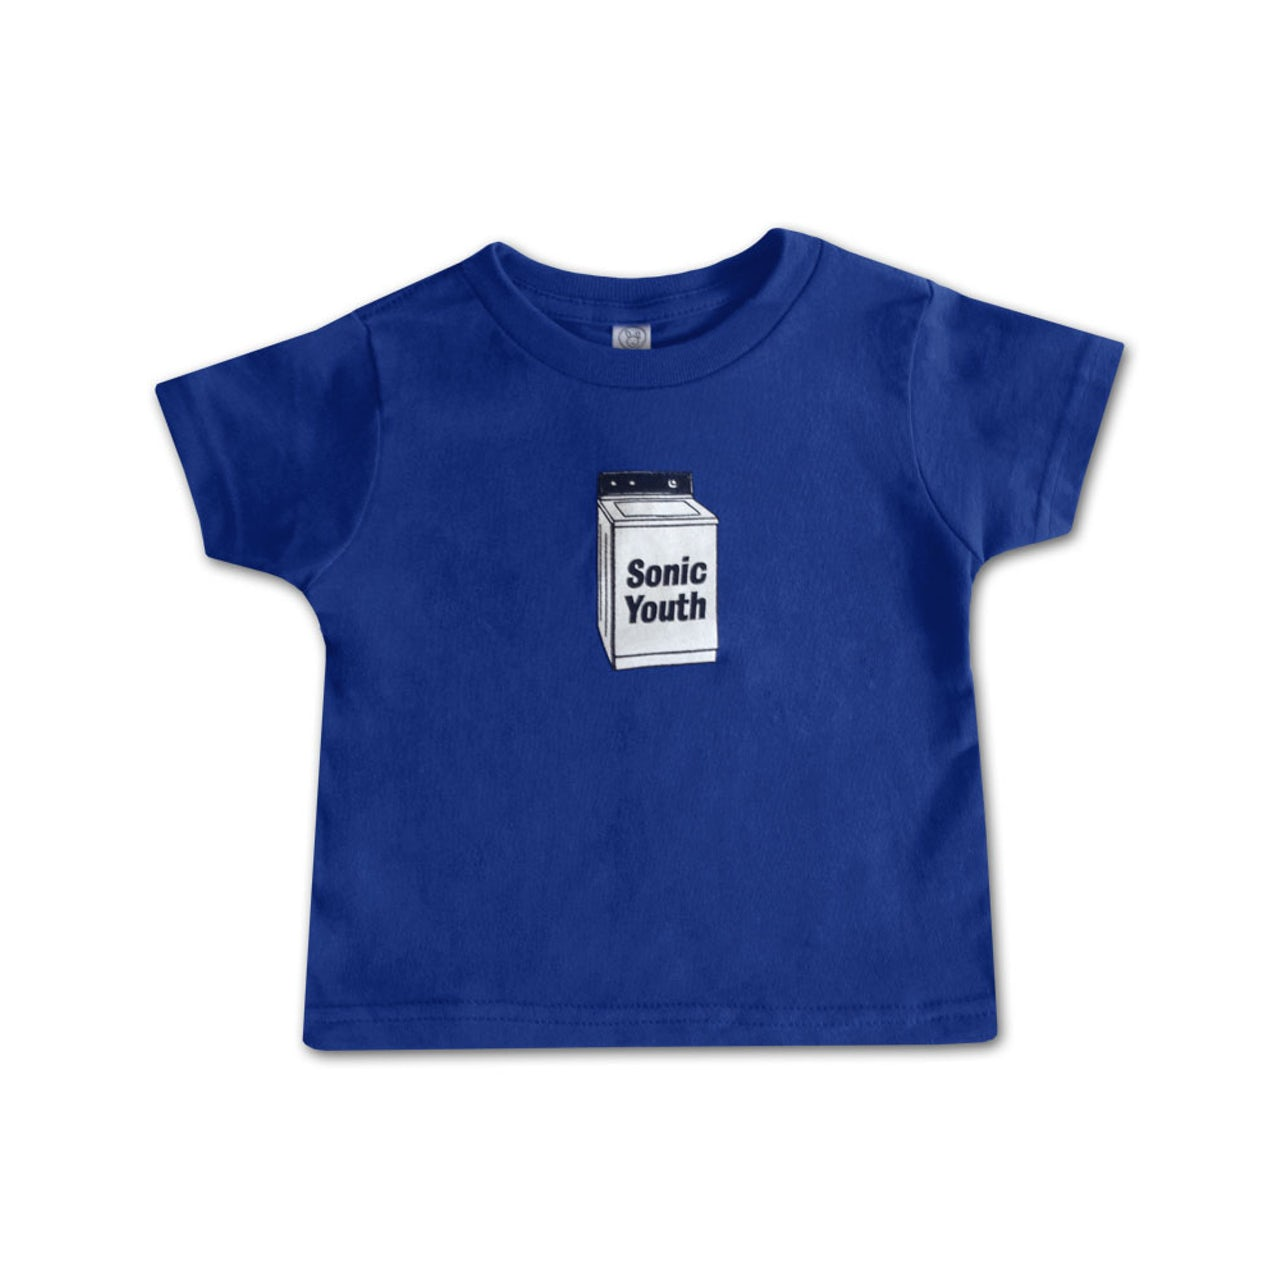 7fd44de33 Sonic Youth Washing Machine Kid's T-shirt/ Baby Onesie. Touch to zoom